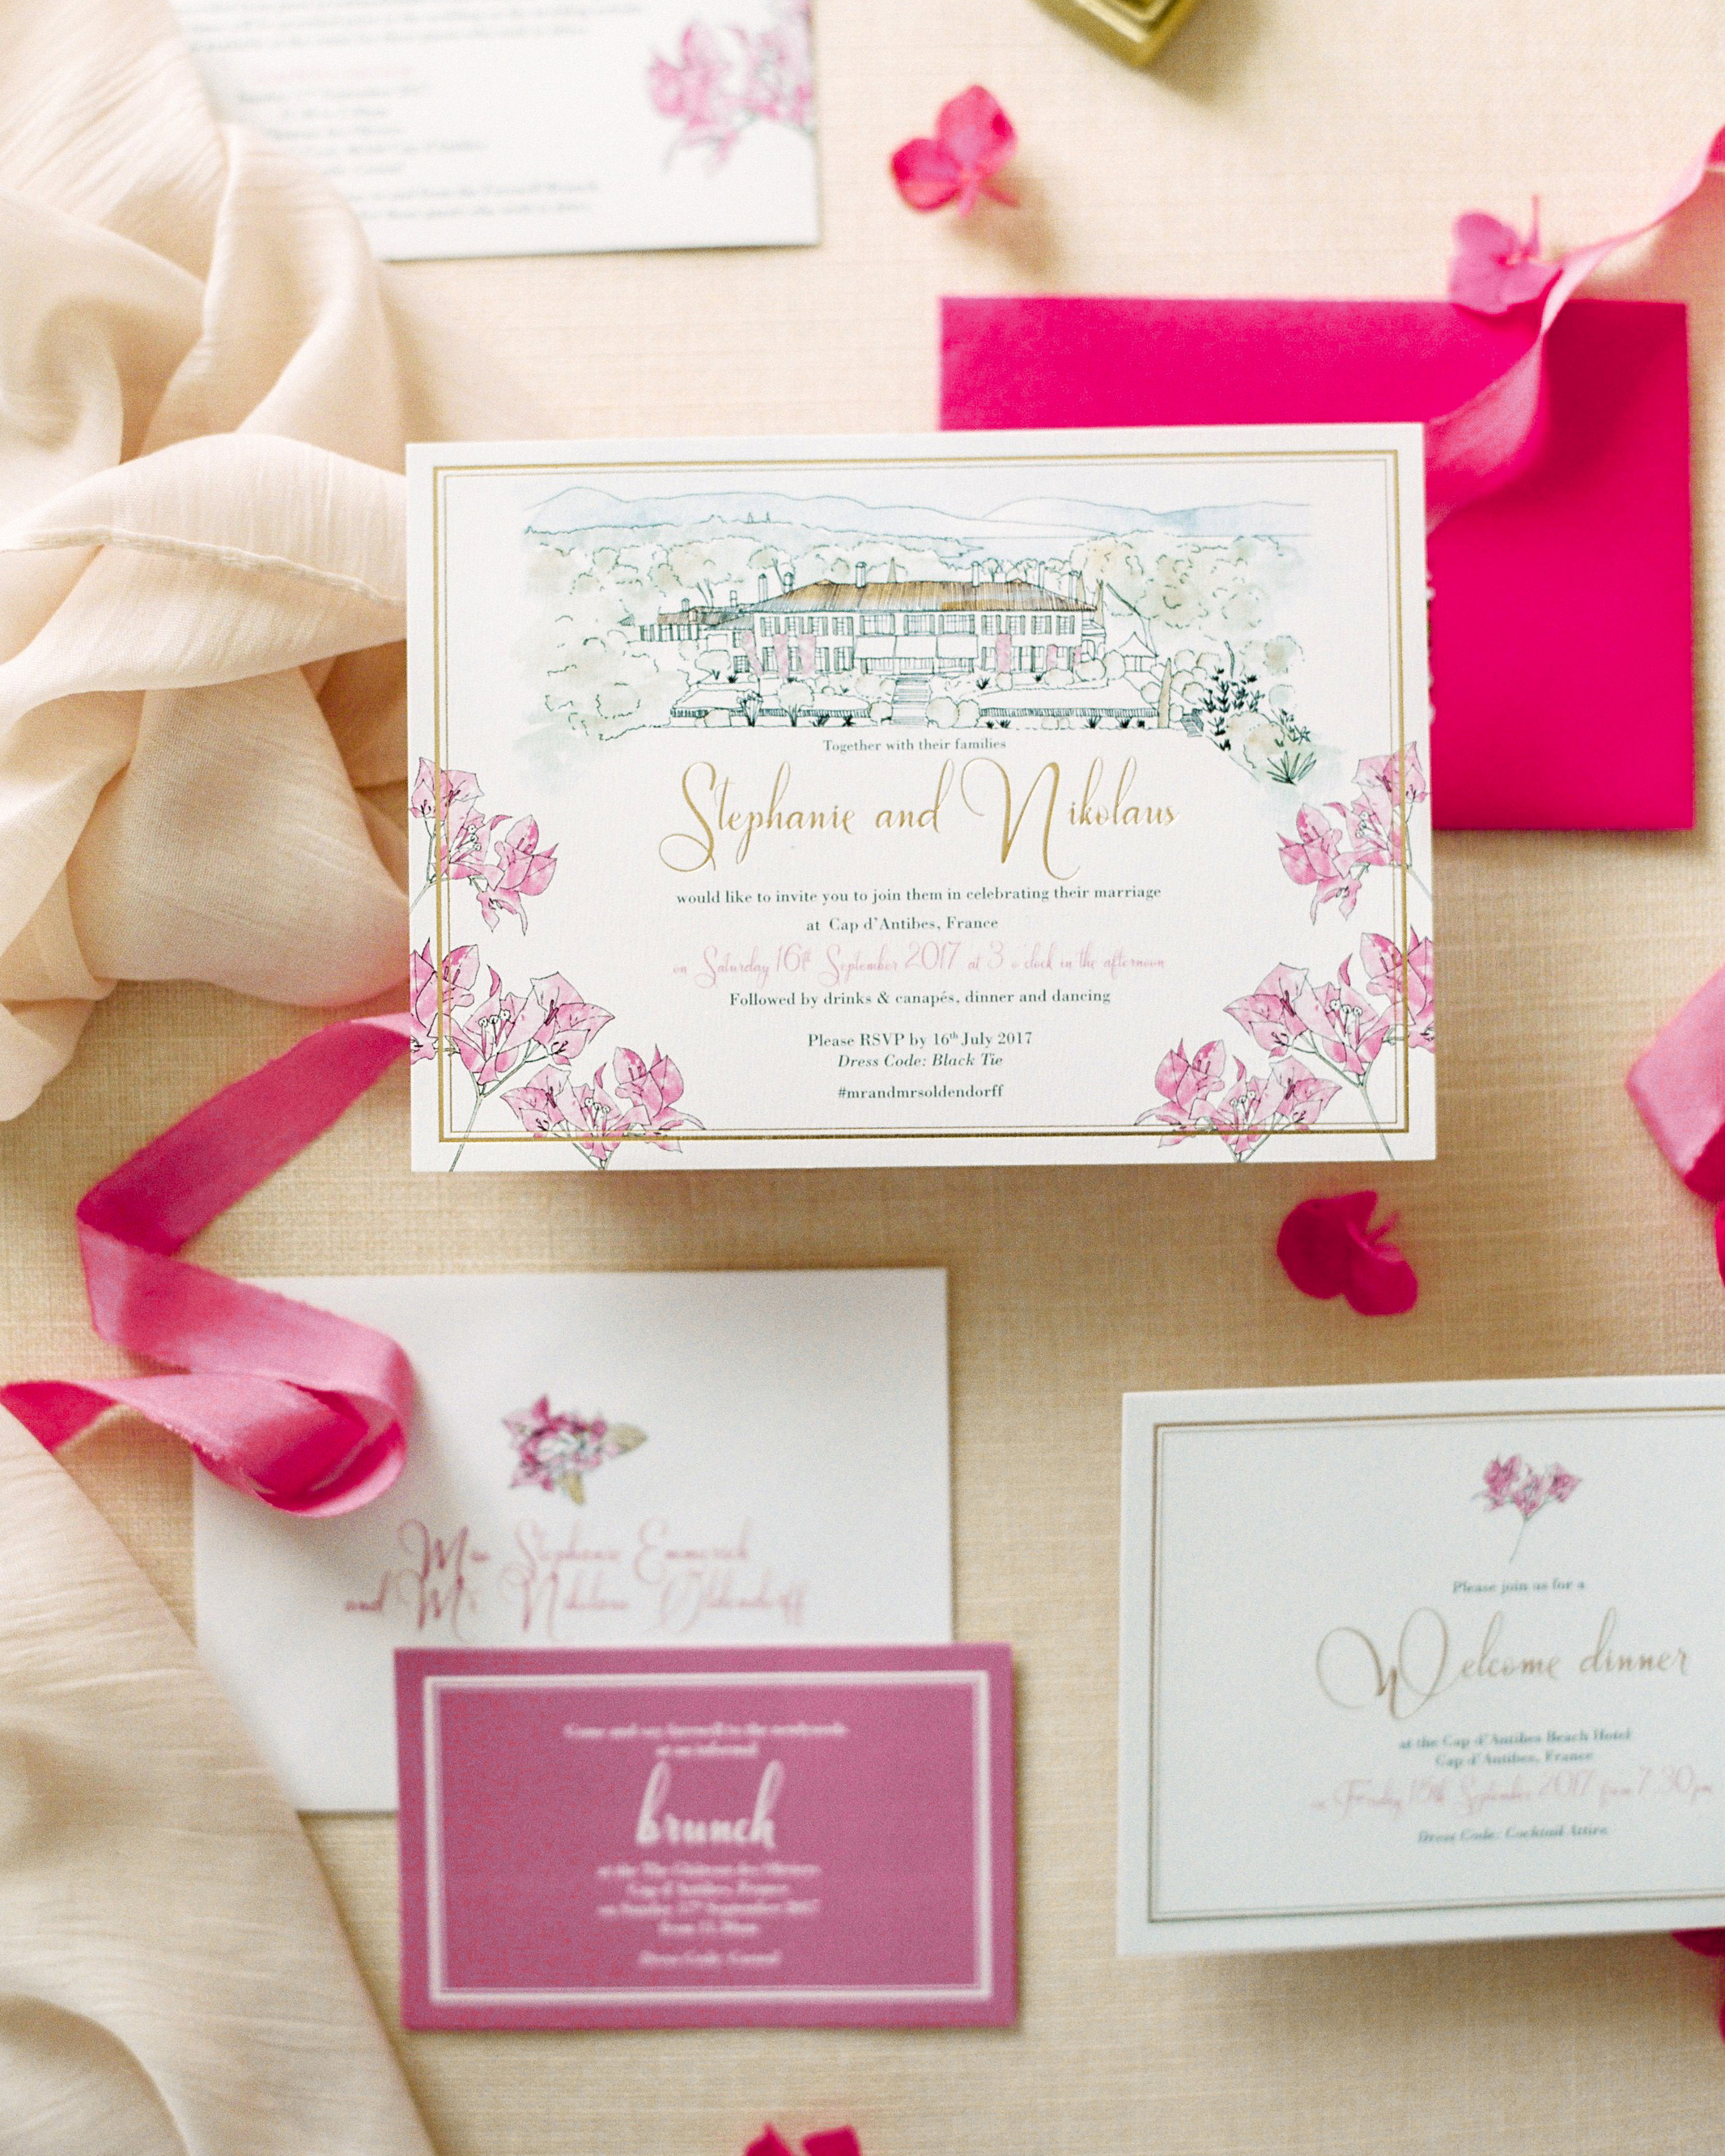 stephanie nikolaus wedding invitation edit